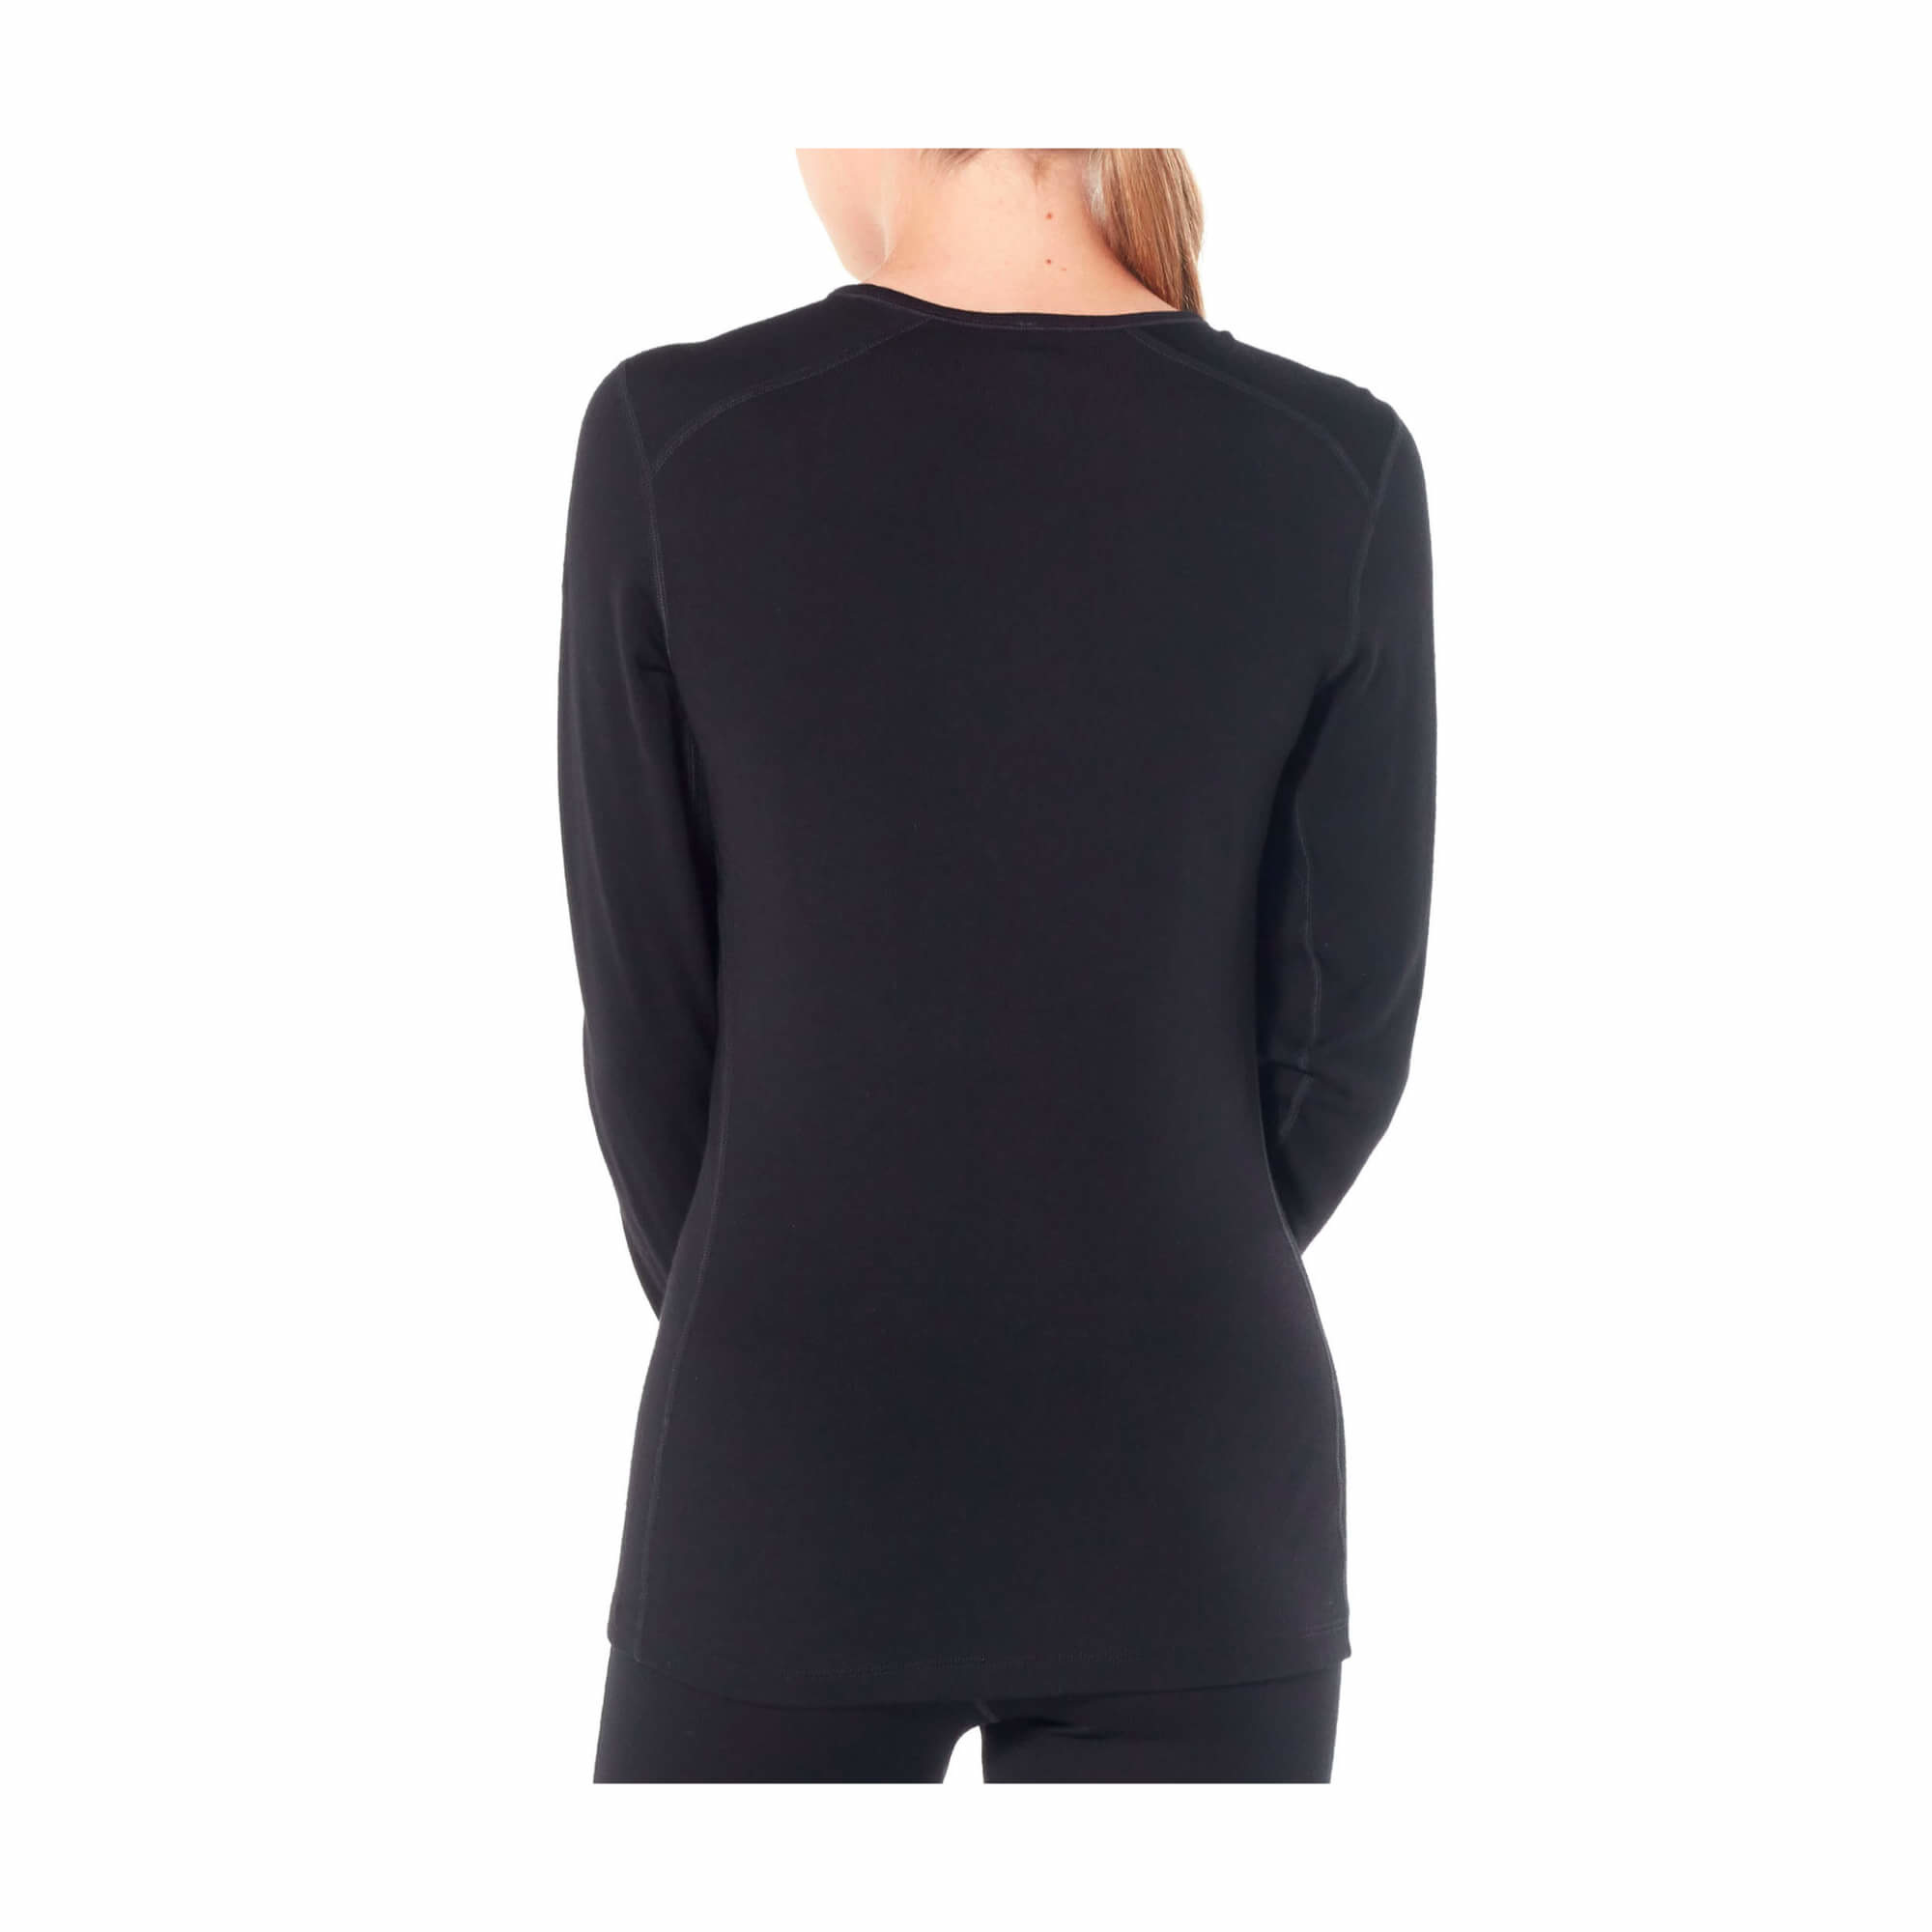 Women's 260 Tech Long Sleeve Crewe-4